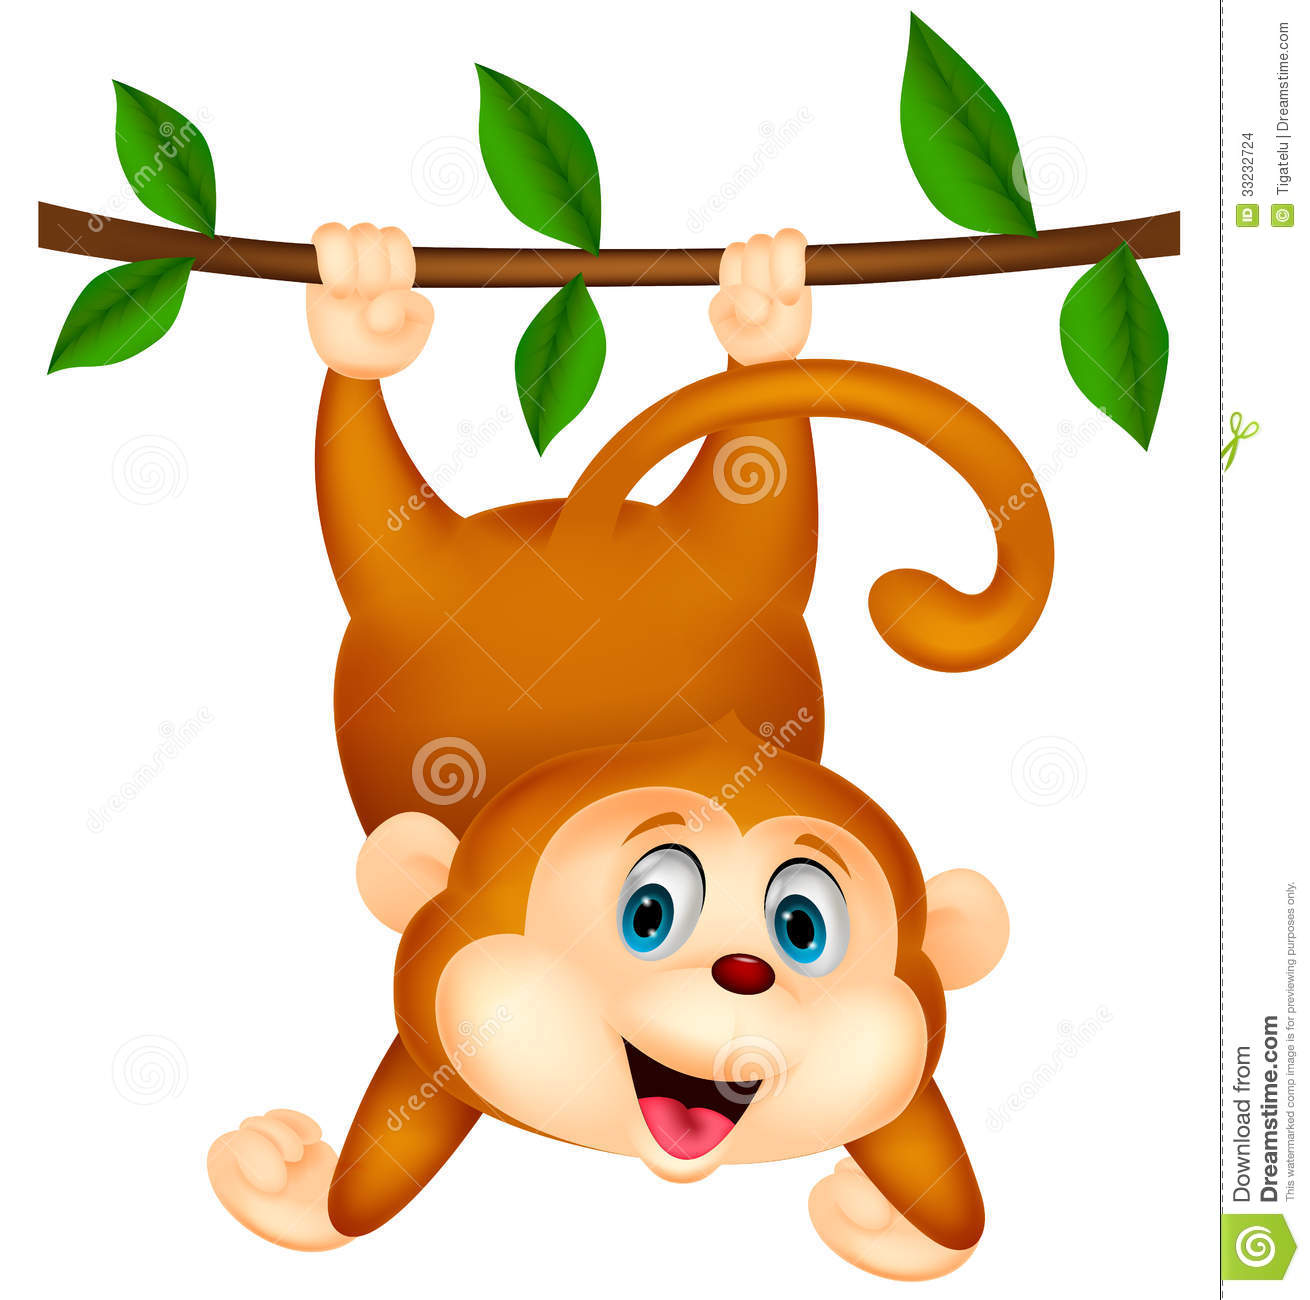 Images for simple cartoon monkey hanging - Cute Monkey Cartoon Hanging Stock Images